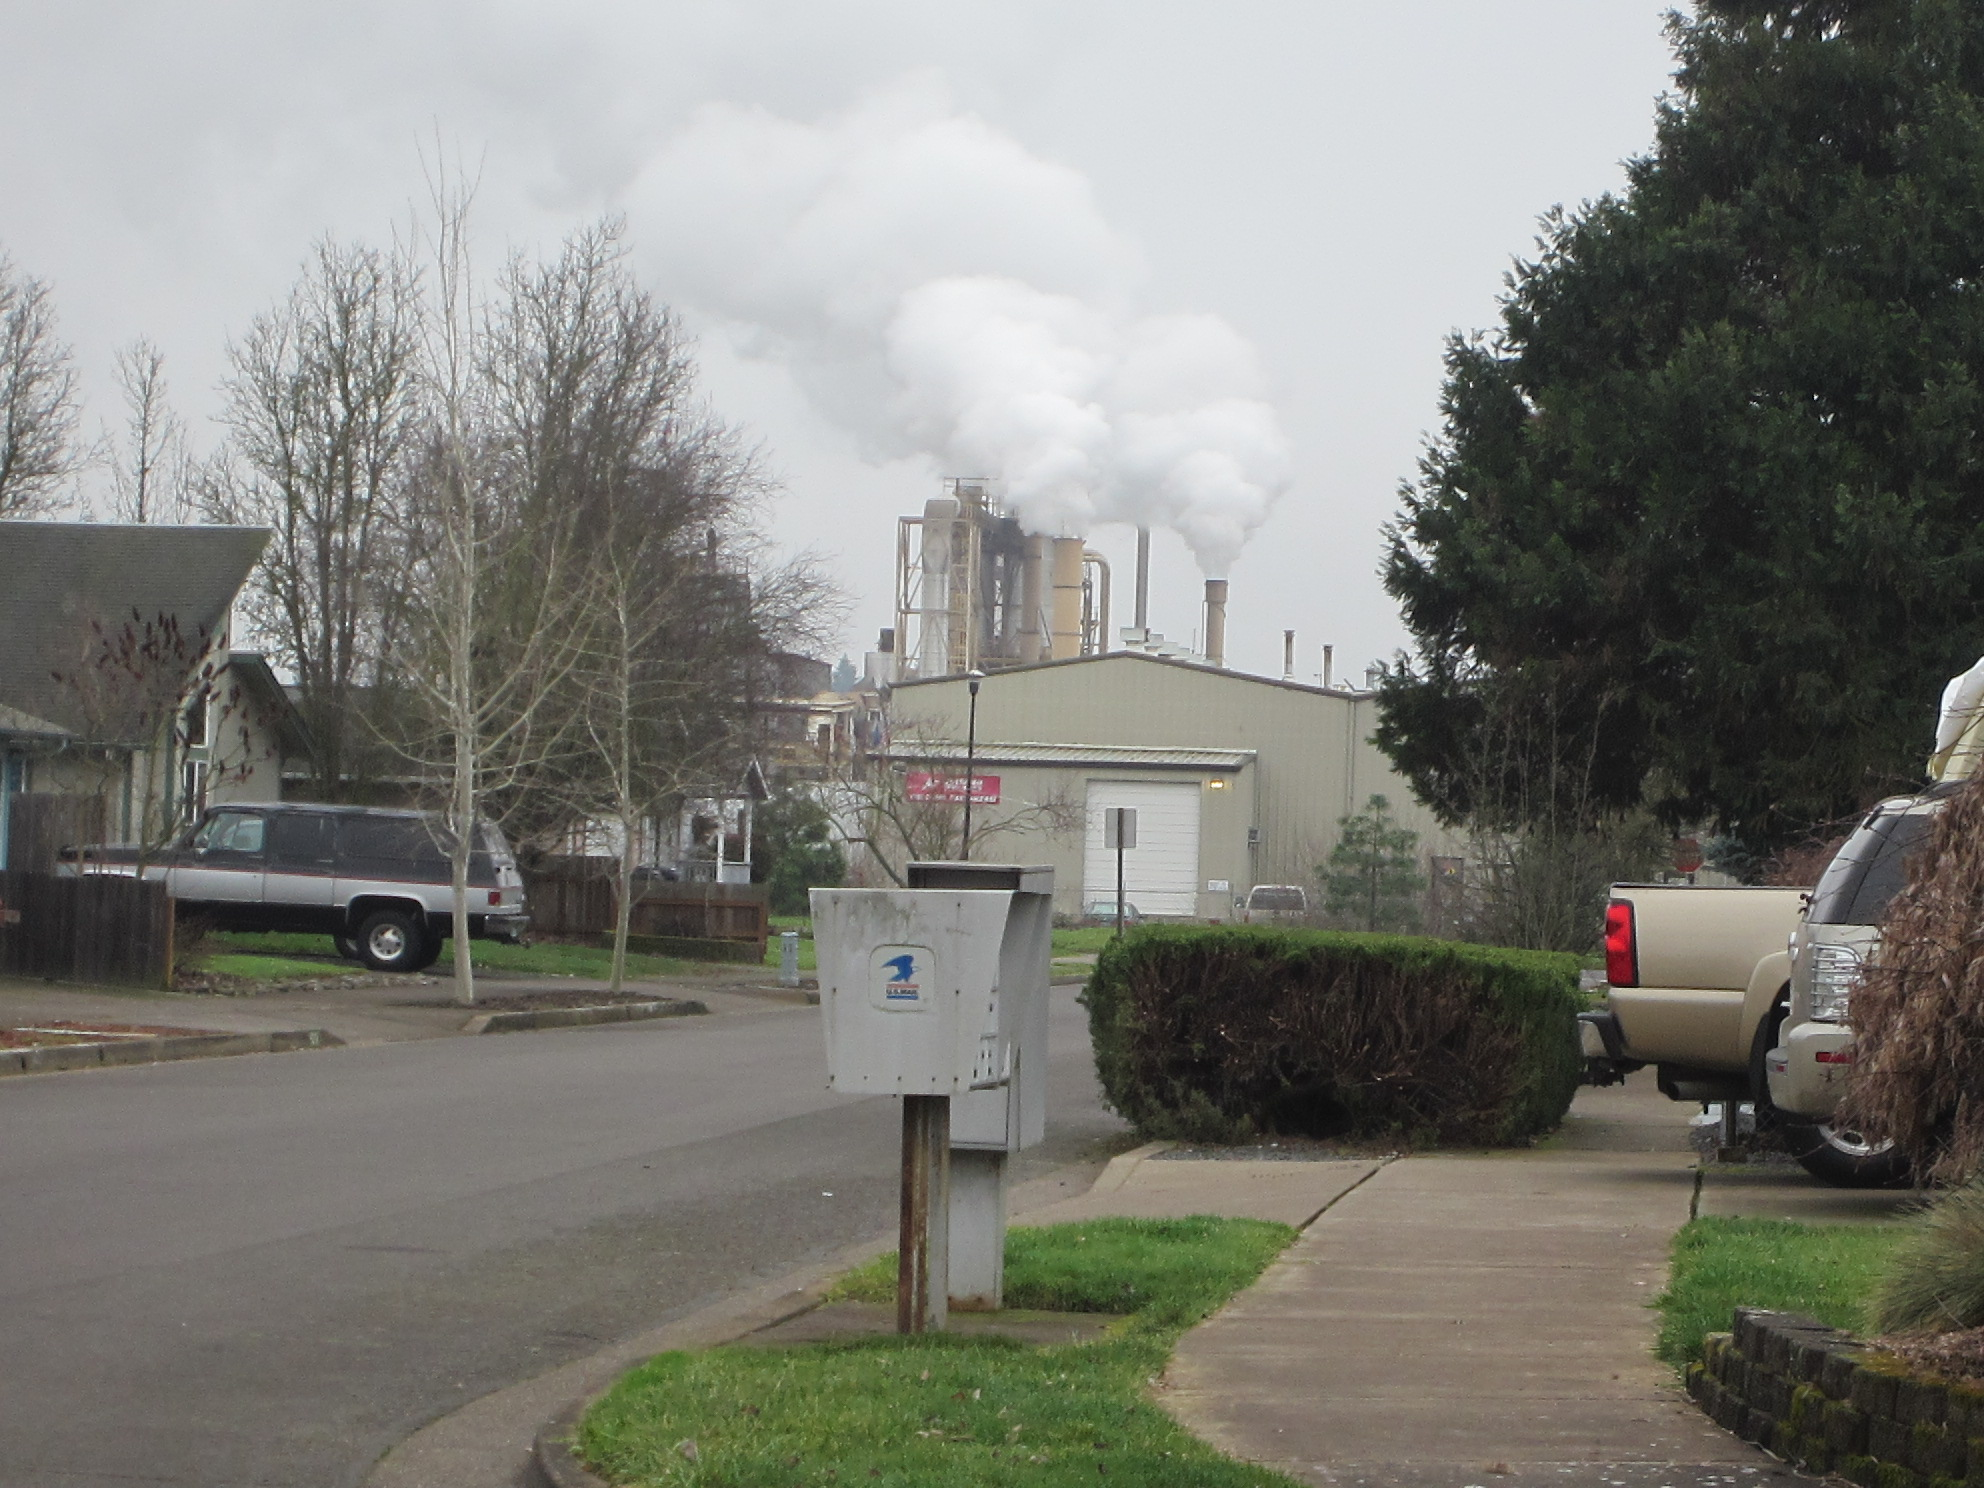 Toxic air fumes less than a block from homes in West Eugene